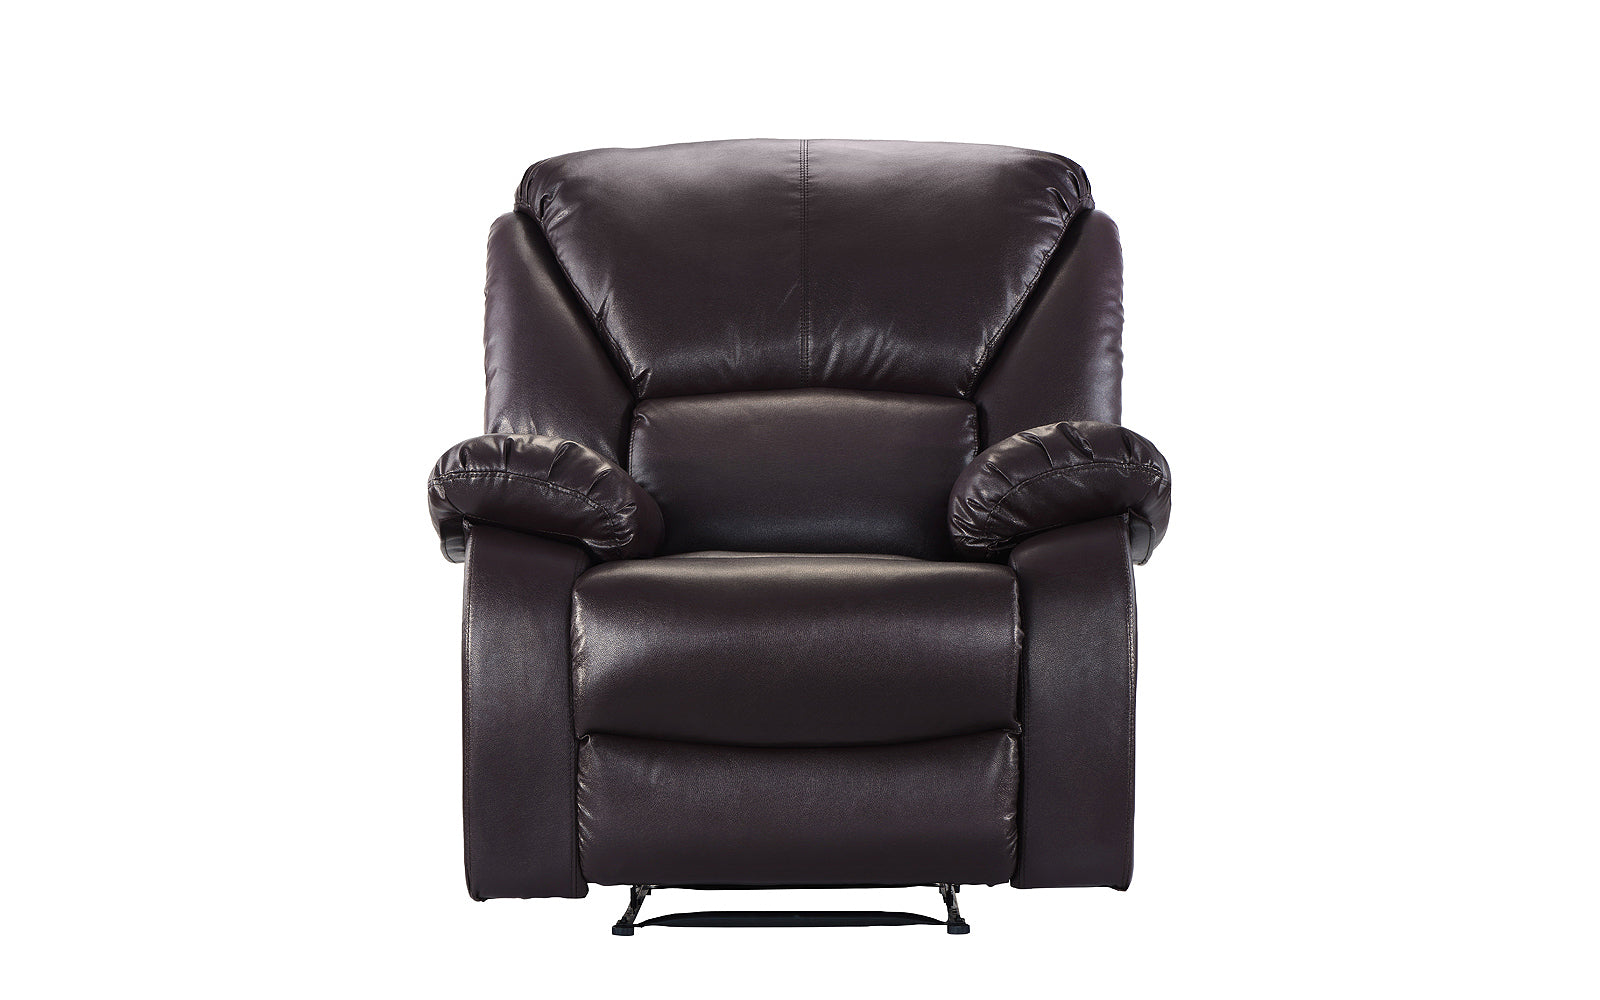 ... Bach Full Body Massage Recliner Chair Brown ...